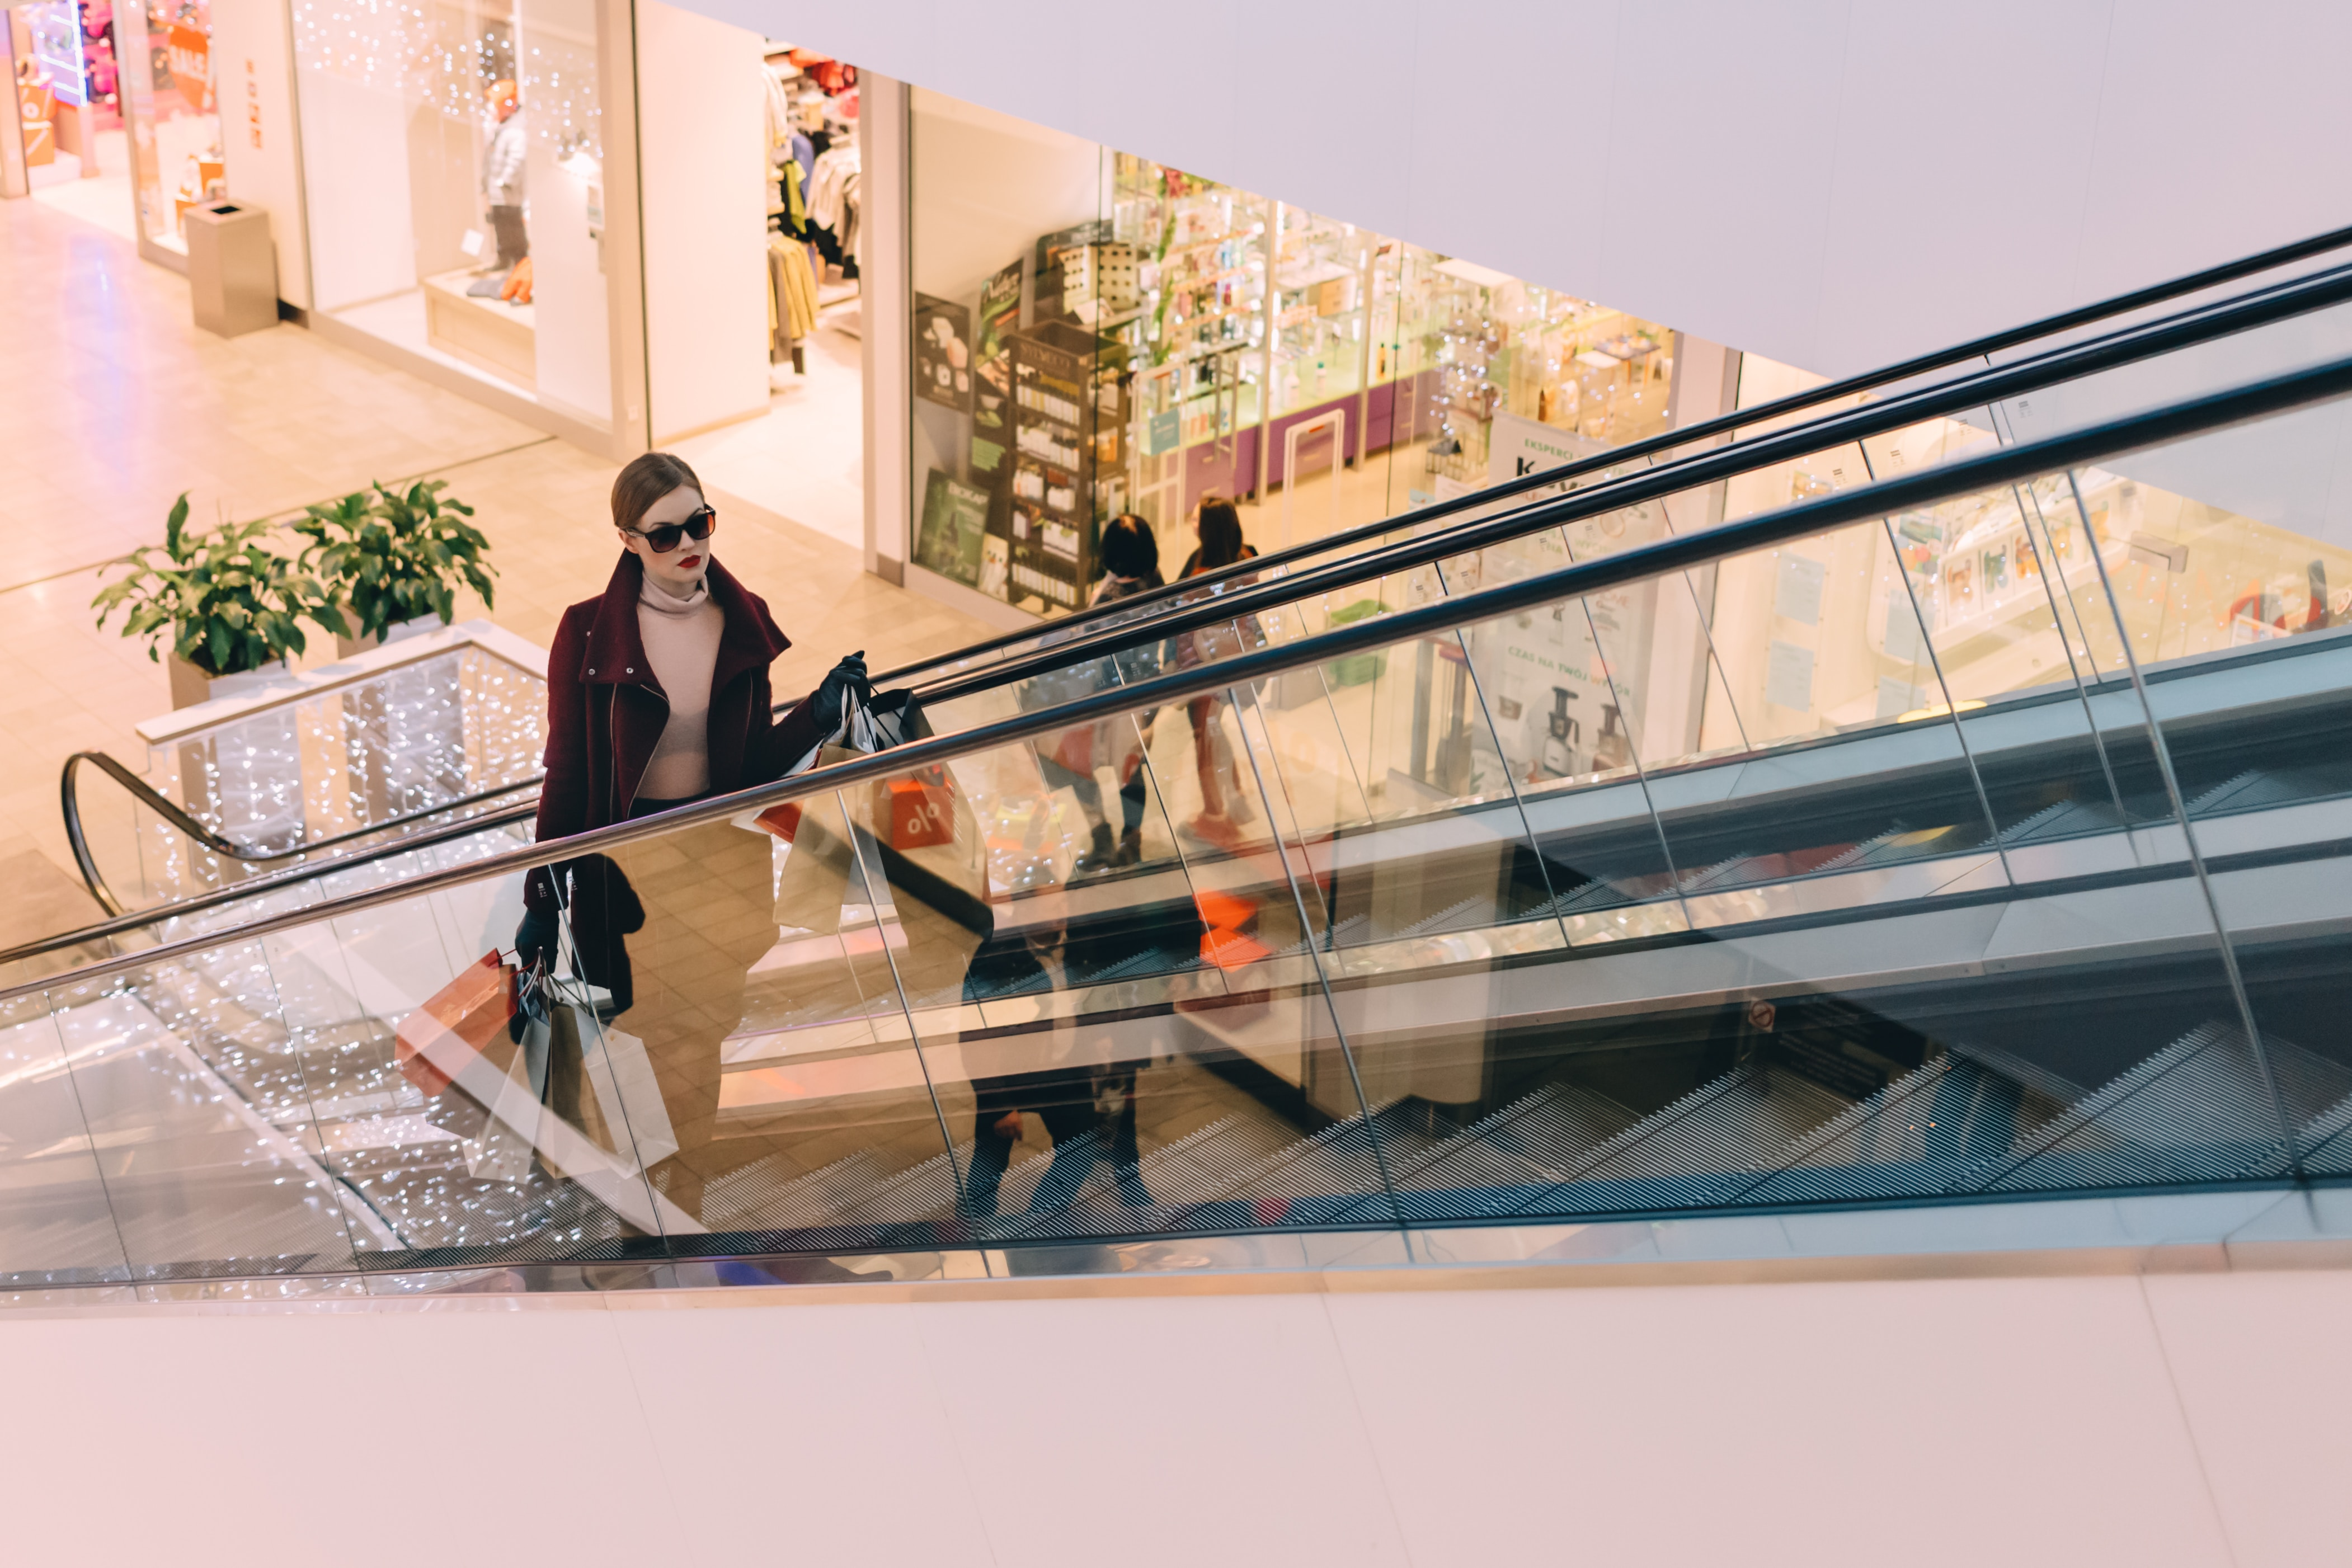 Case Study: Fashion and Retail